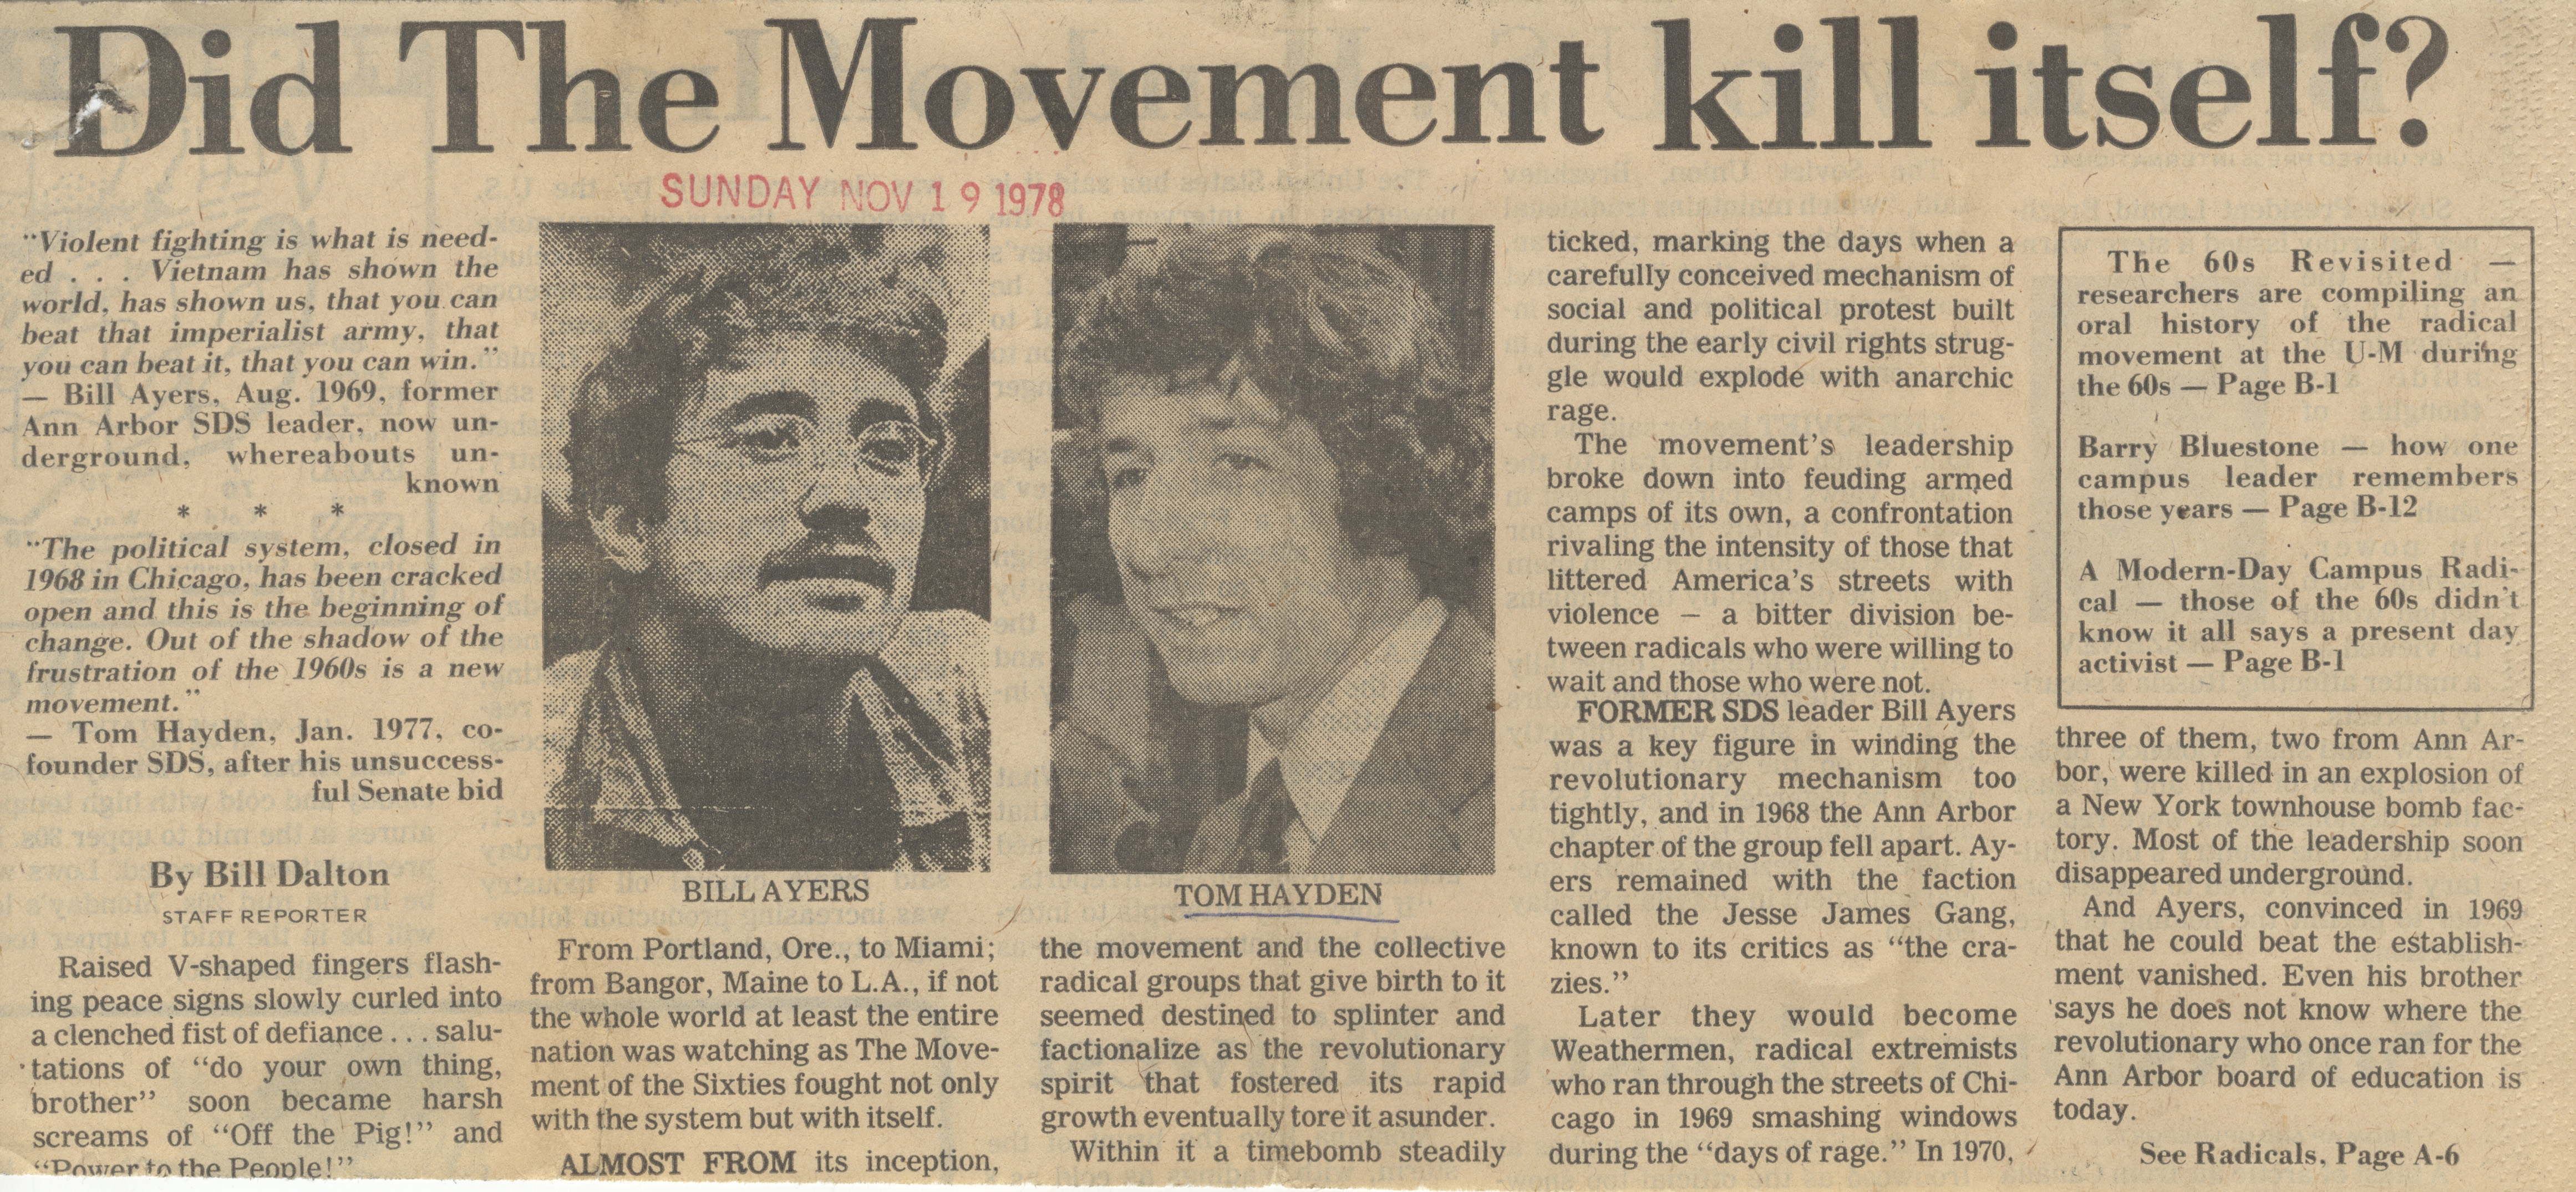 Did the Movement Kill Itself? image